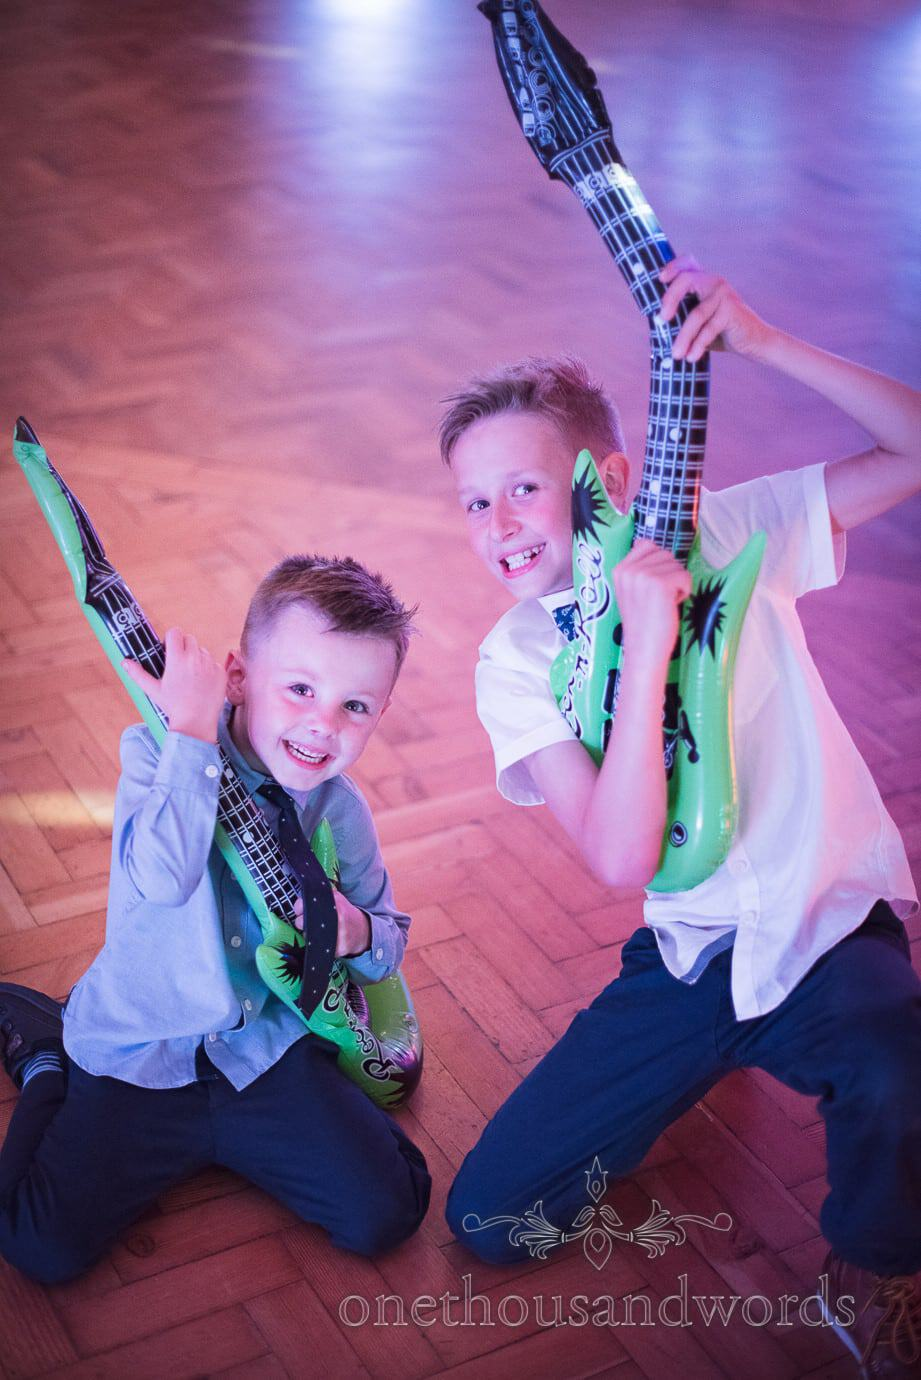 Children play inflatable guitars on dance floor at rock and roll themed wedding photographs